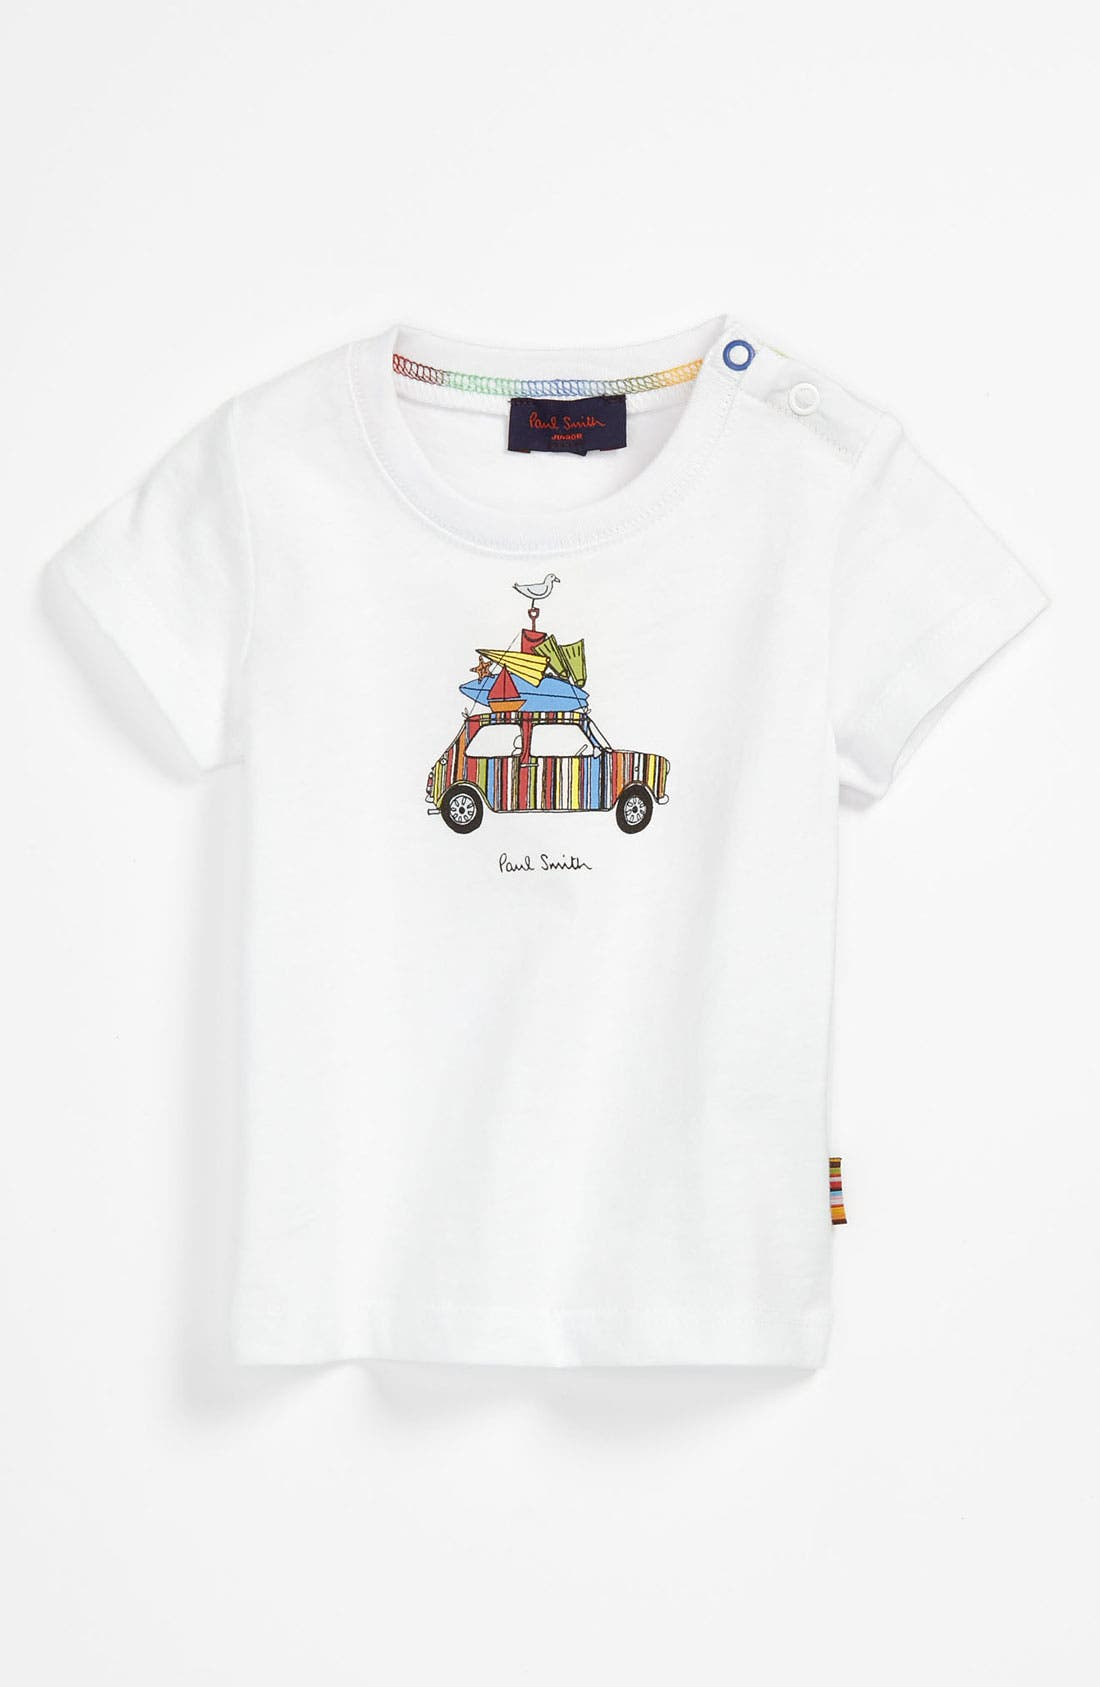 Alternate Image 1 Selected - Paul Smith Junior 'Car' T-Shirt (Baby)